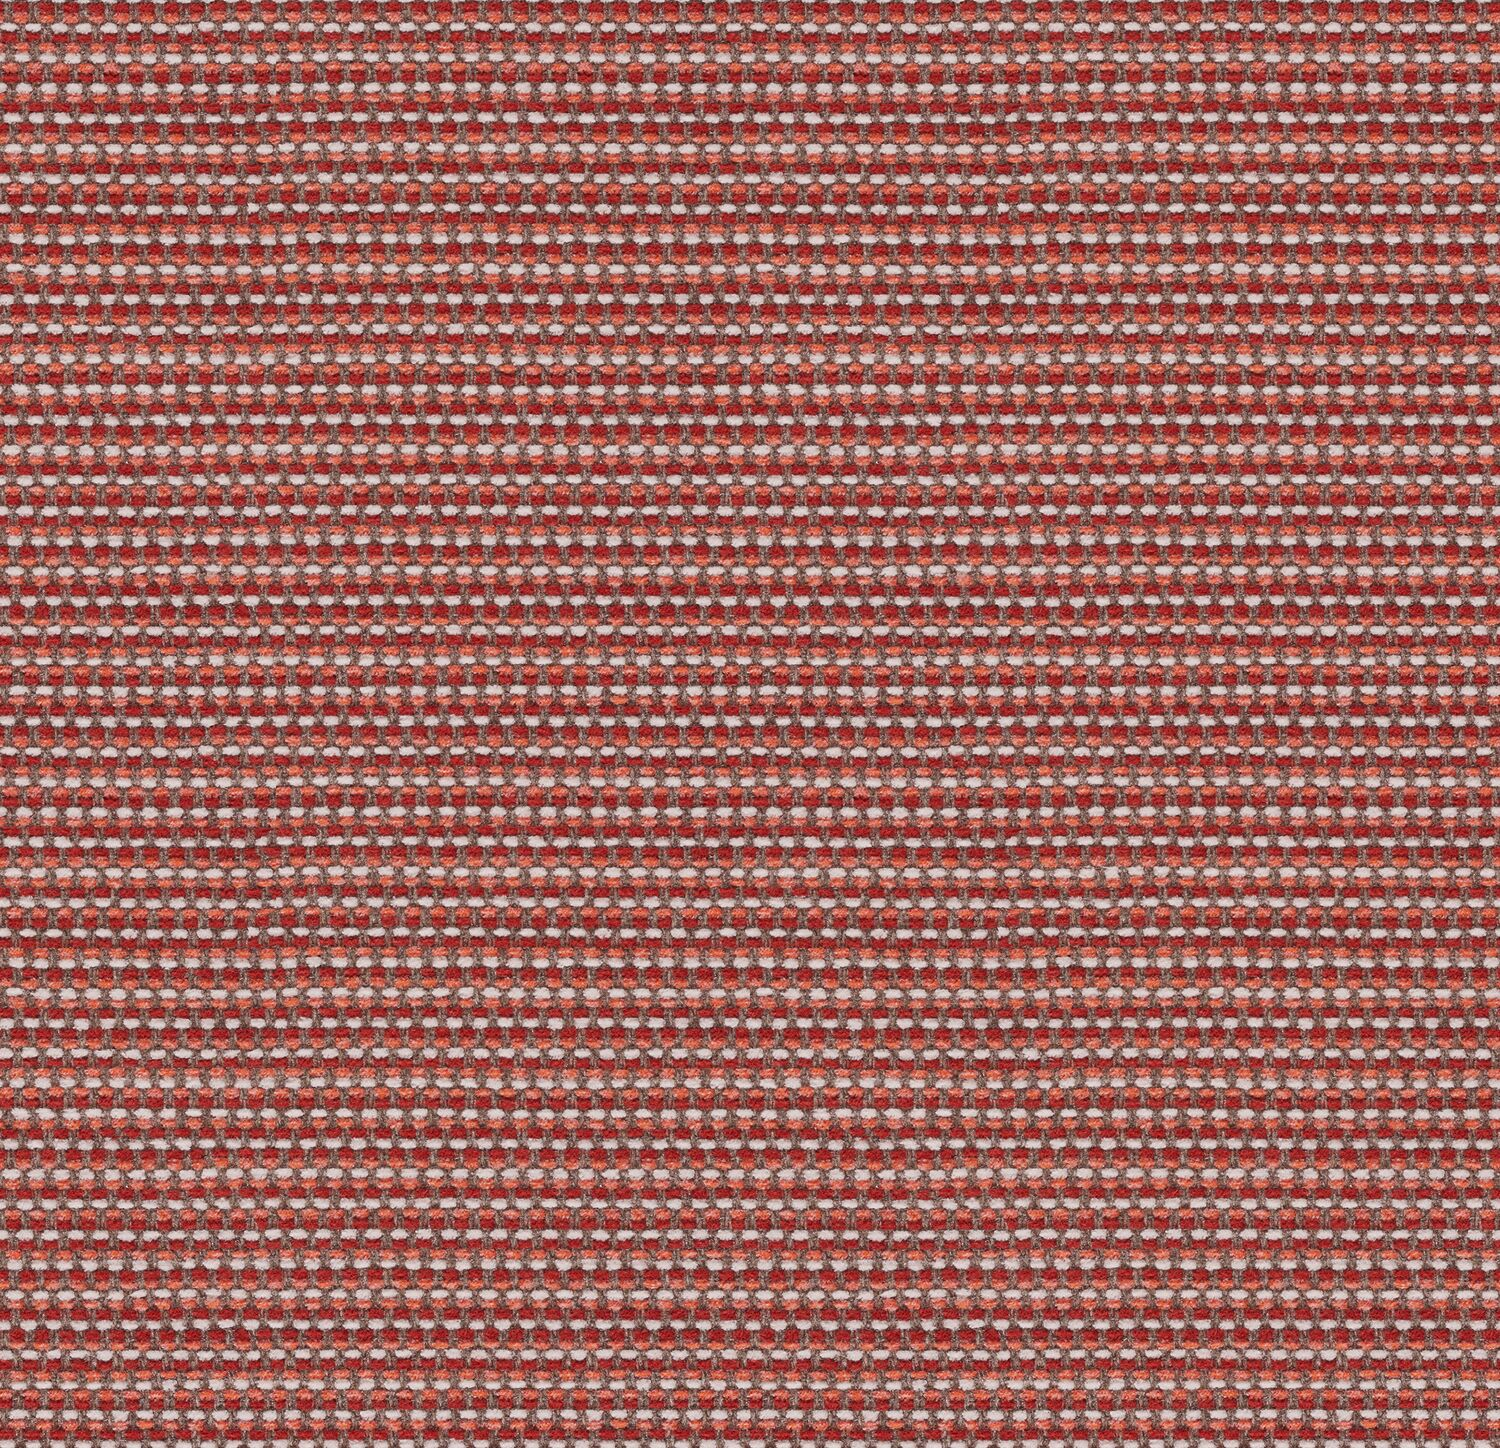 Megapixel - Roe - 4097 - 04 Tileable Swatches